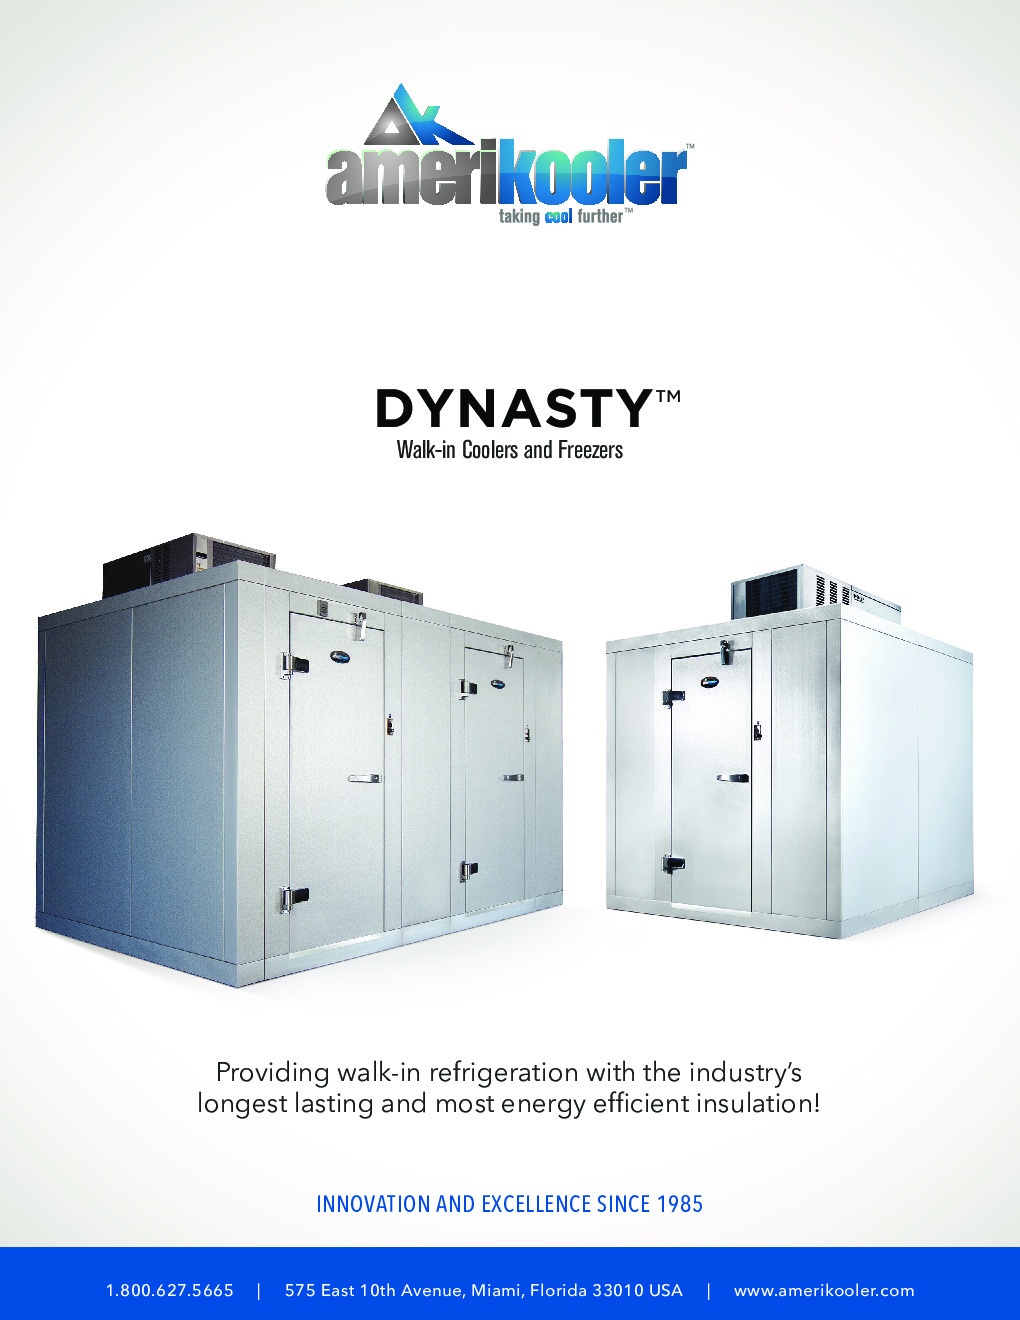 AmeriKooler DW092077N-8/12-RM 9' X 20' Walk-In Cooler, 12' L Cooler without Floor and 8' L Freezer, Remote